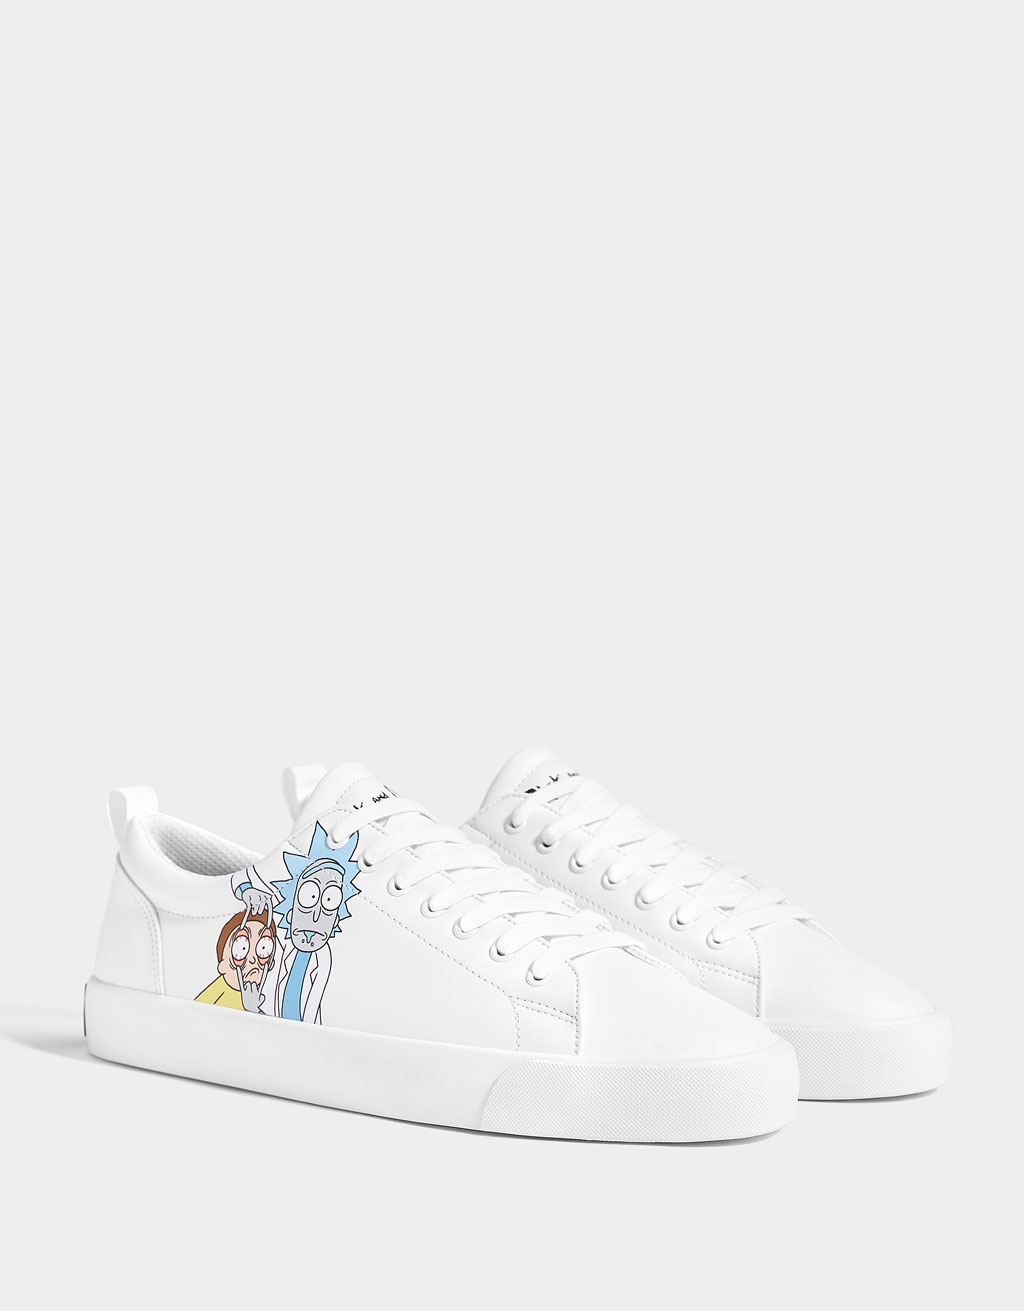 Men´s Rick & Morty trainers